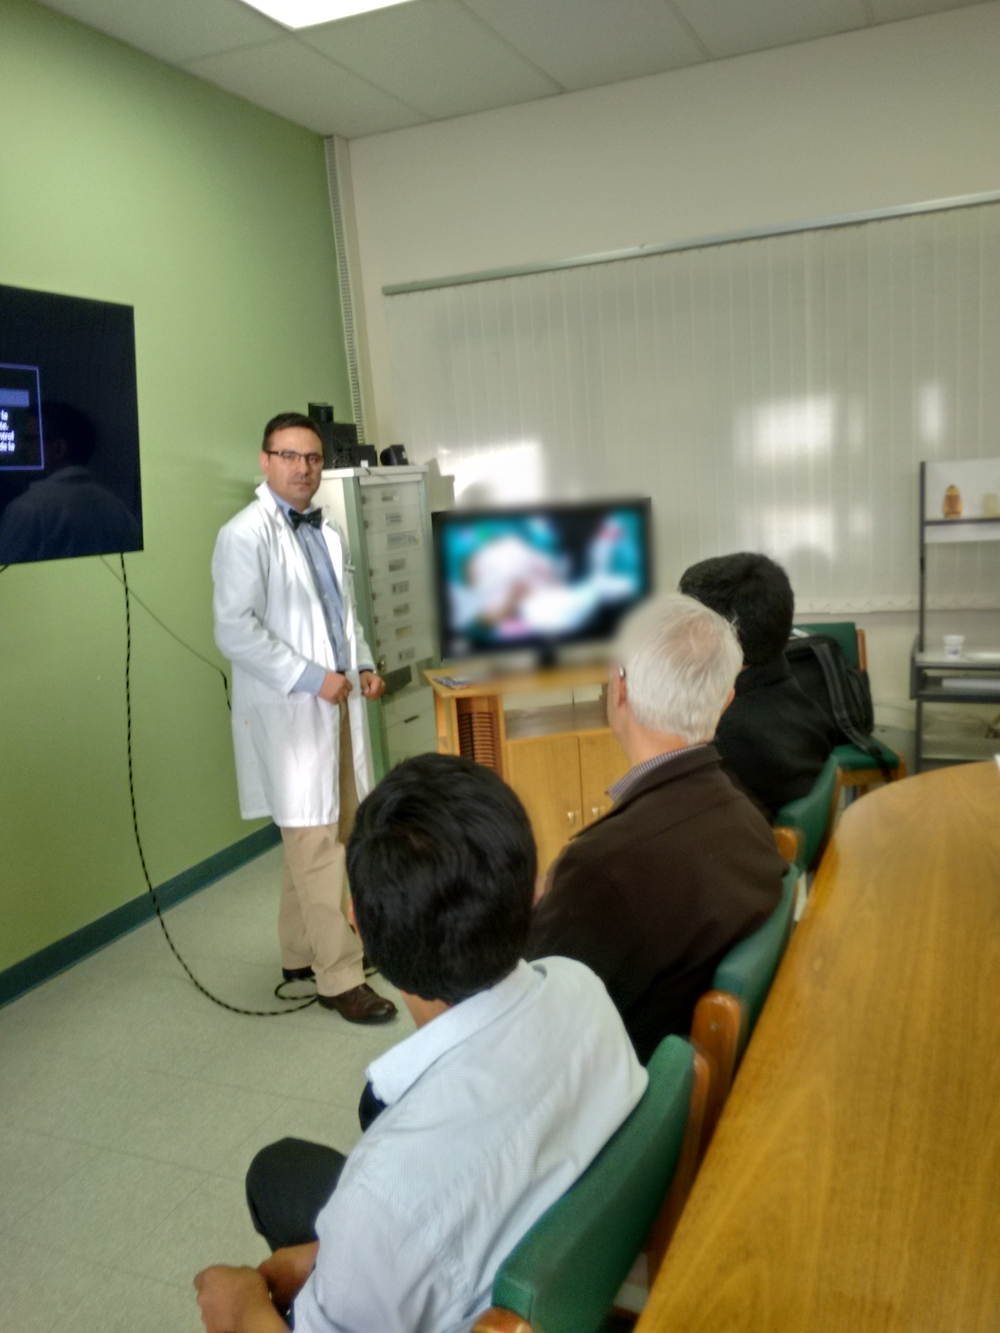 Technology helped the Endoscopy course faculty enhance the learning of program participants. Dr Martin Aliaga played a major role in organizing and hosting the Endoscopy course with the support of Puente de Solidaridad. Here Martin comments on the surgery that is underway.